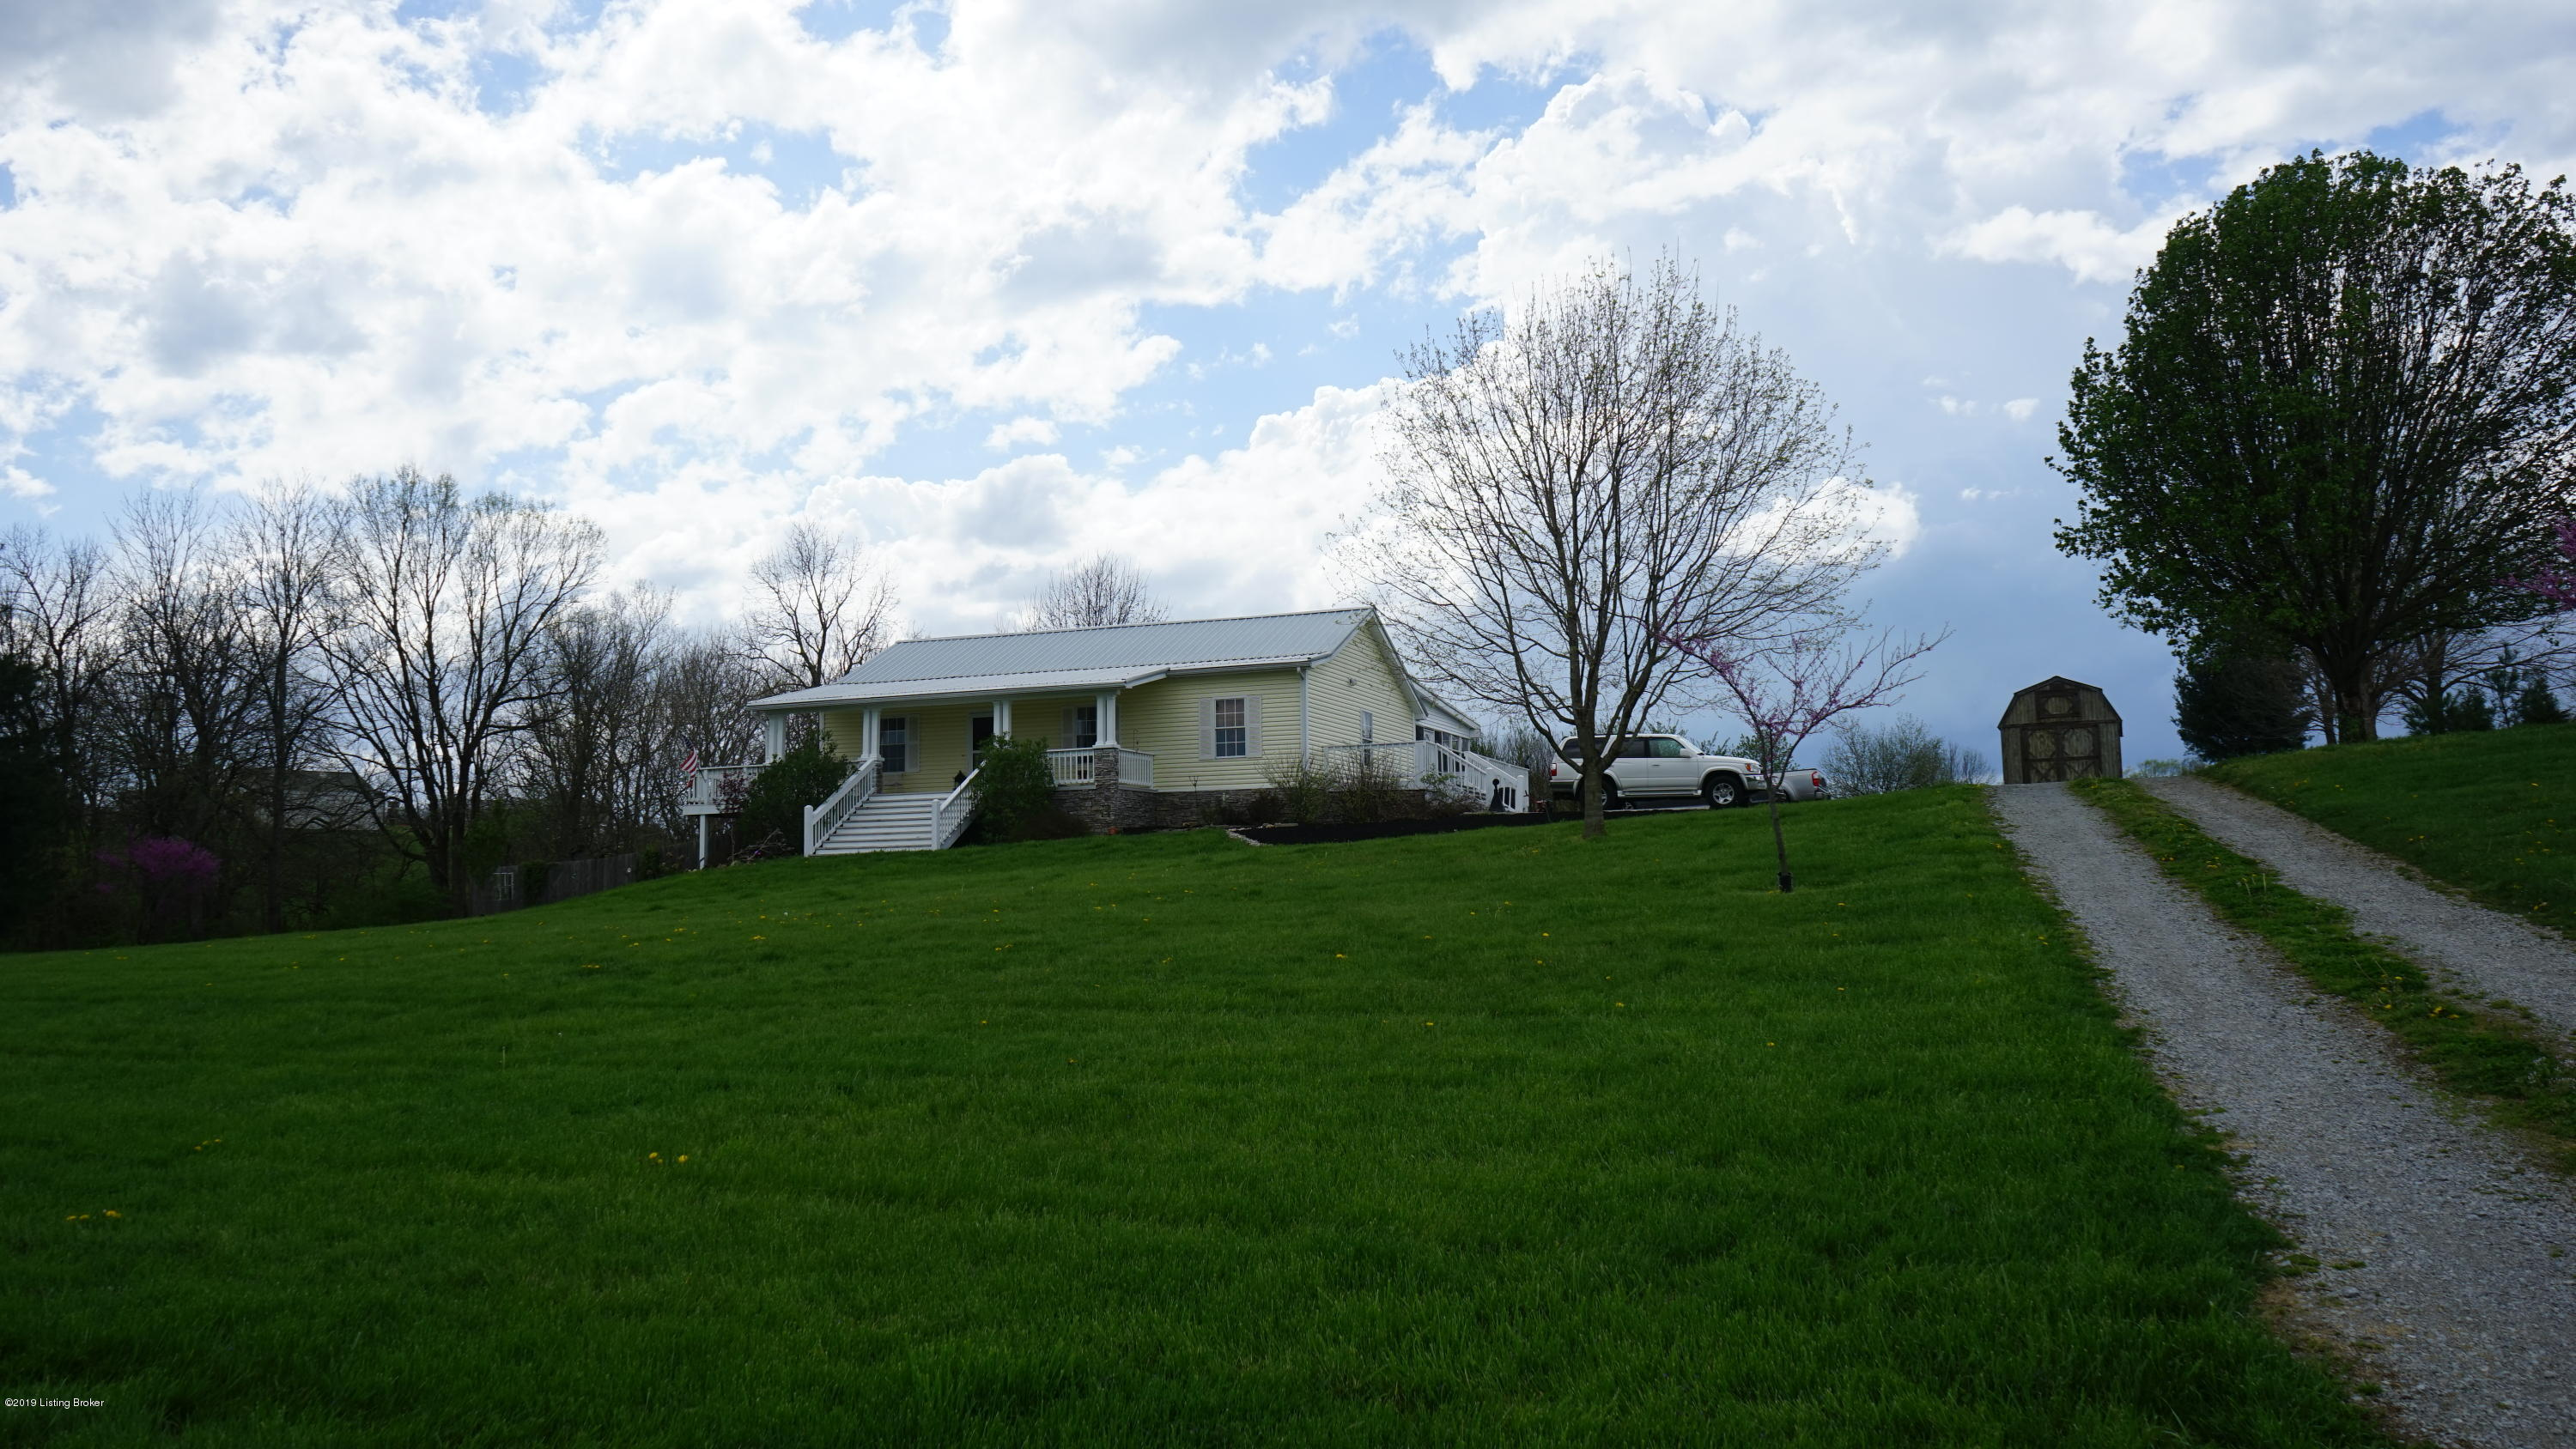 3720 Old Bloomfield Rd, Bardstown, Kentucky 40004, 2 Bedrooms Bedrooms, 9 Rooms Rooms,3 BathroomsBathrooms,Residential,For Sale,Old Bloomfield,1528318